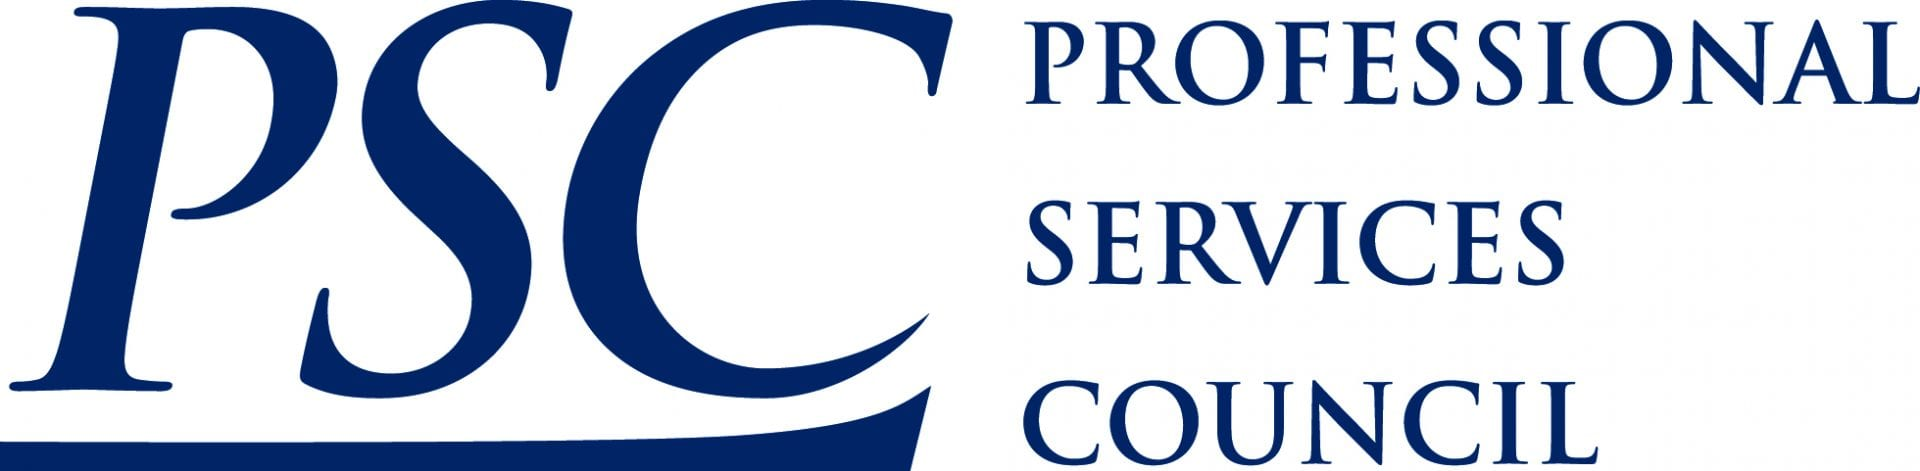 The Professional Services Council (PSC)